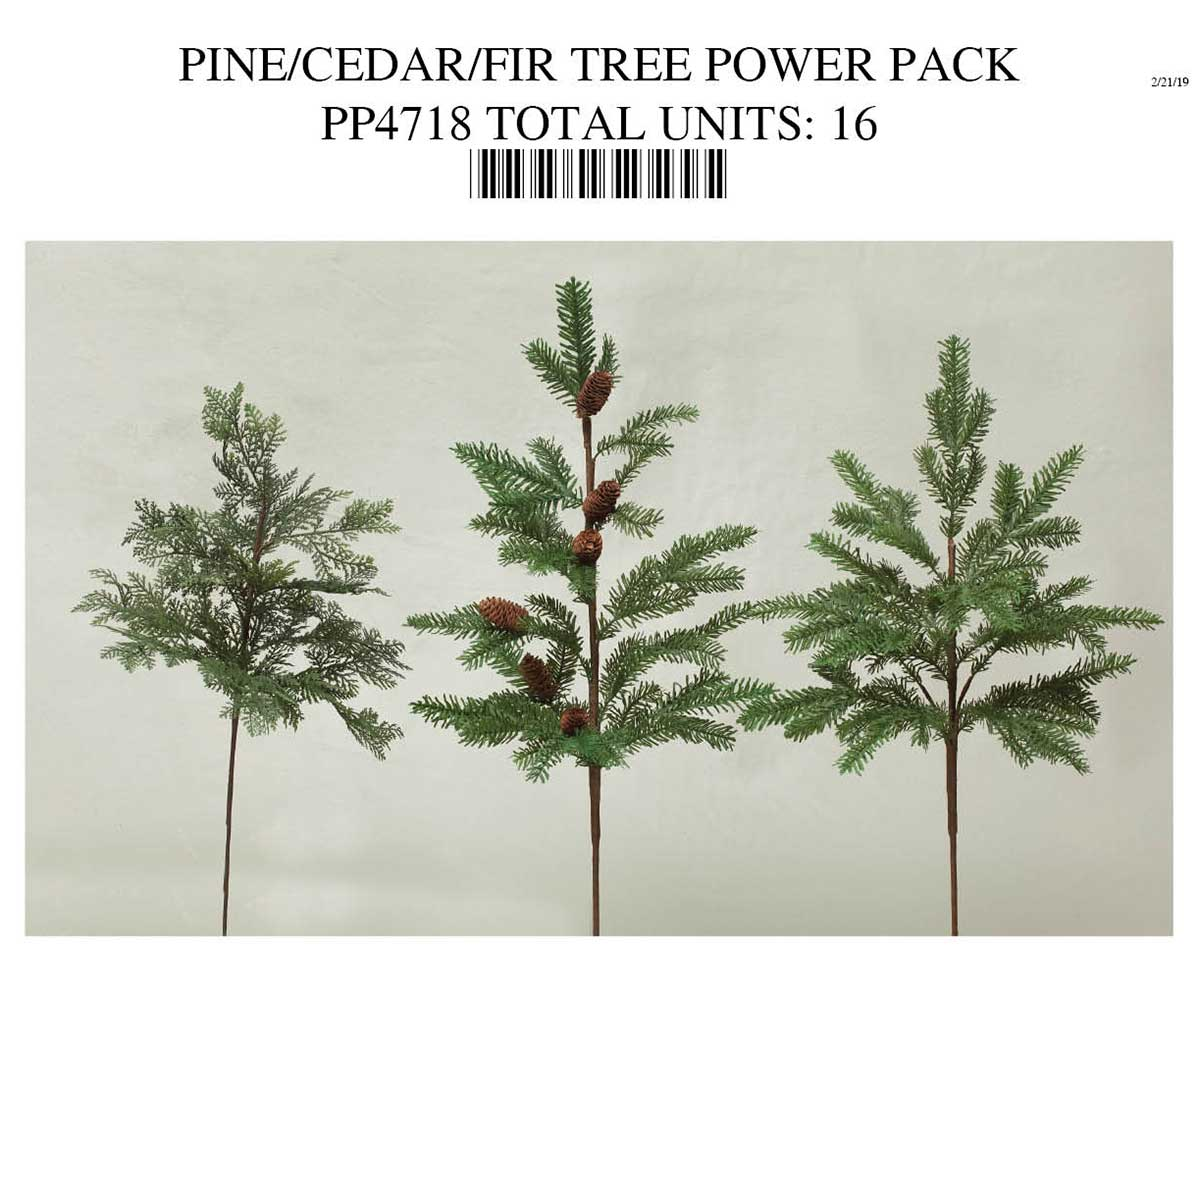 PINE TREE POWER PACK PP4718